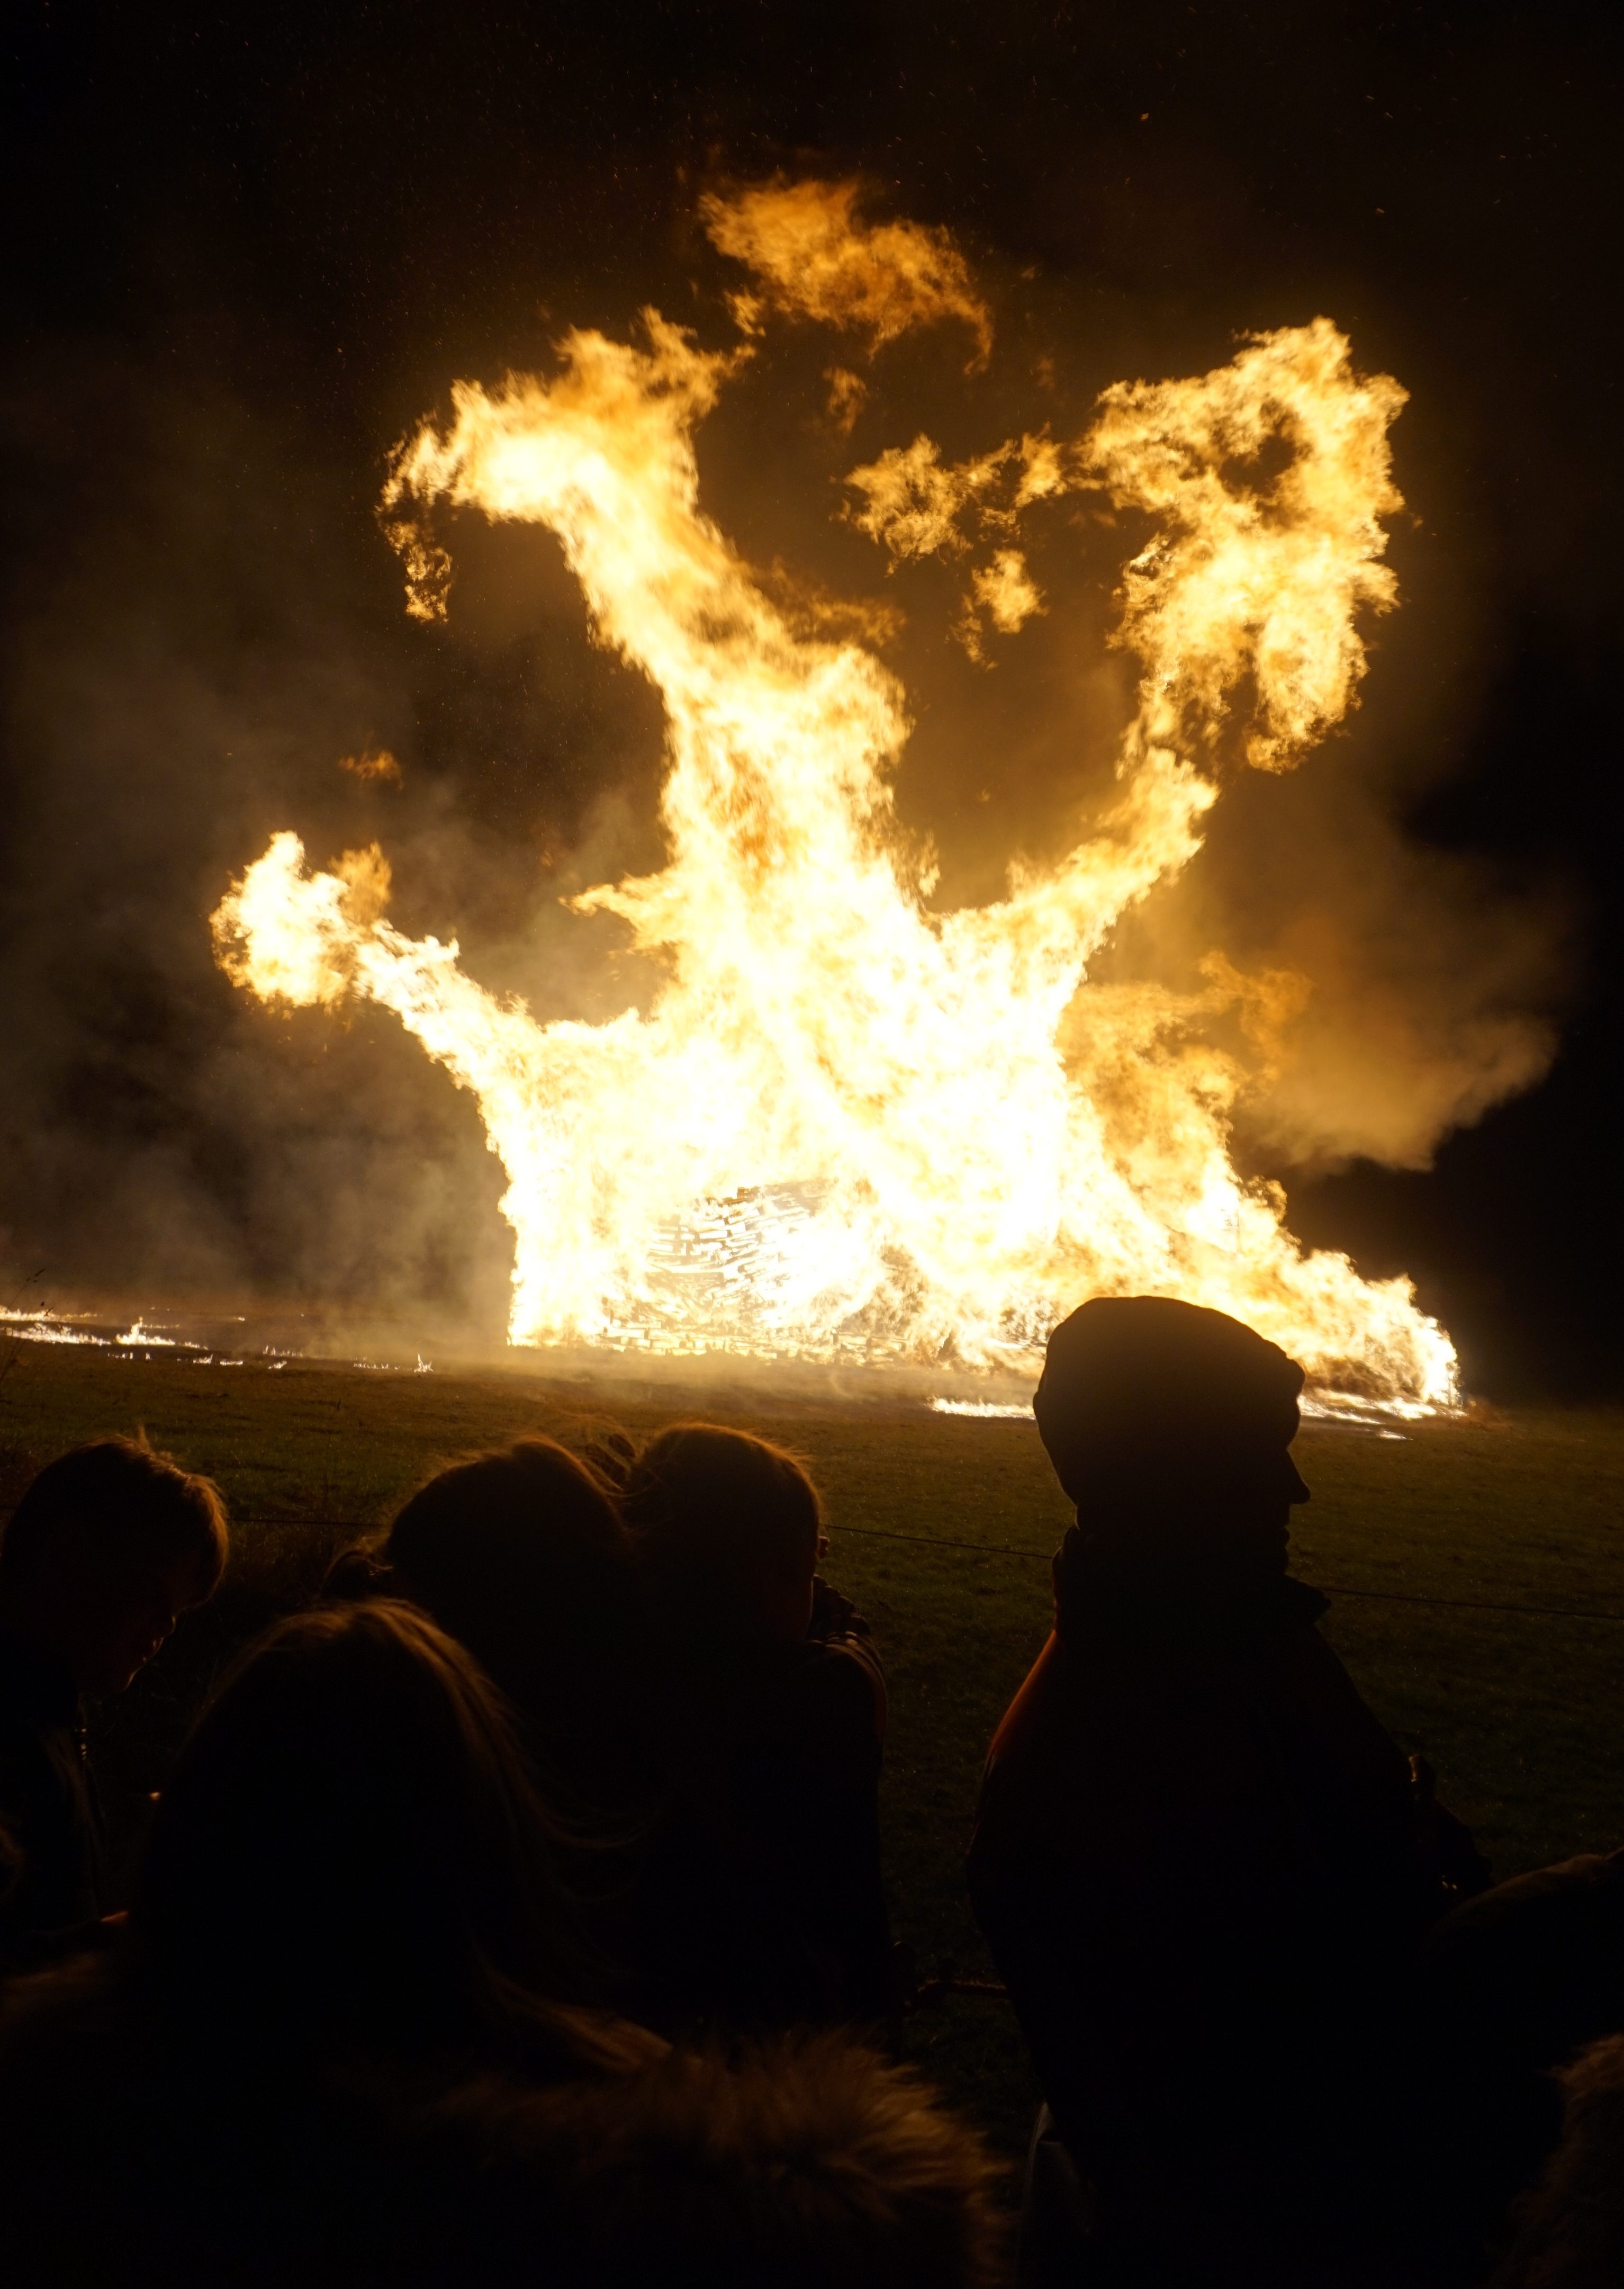 A giant bright bonfire rages at night while onlookers watch from a safe distance.